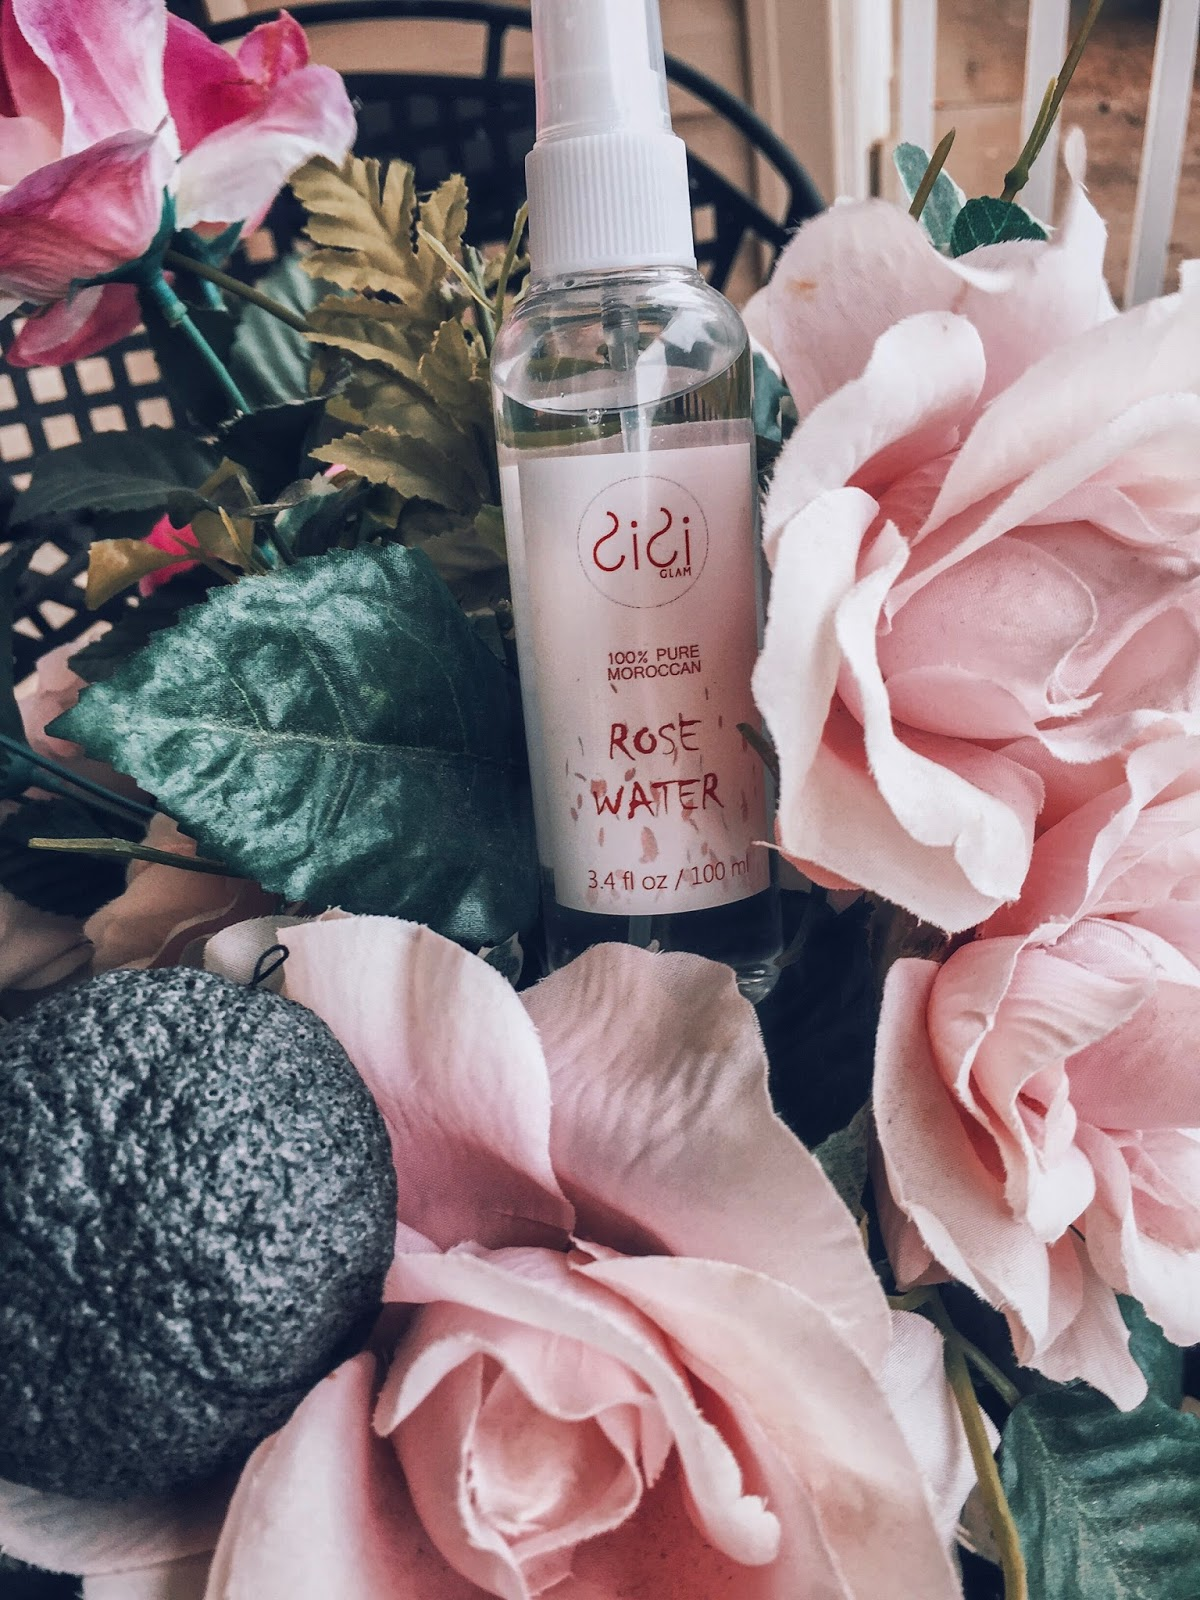 BEAUTY PRODUCT REVIEW: ROSE WATER